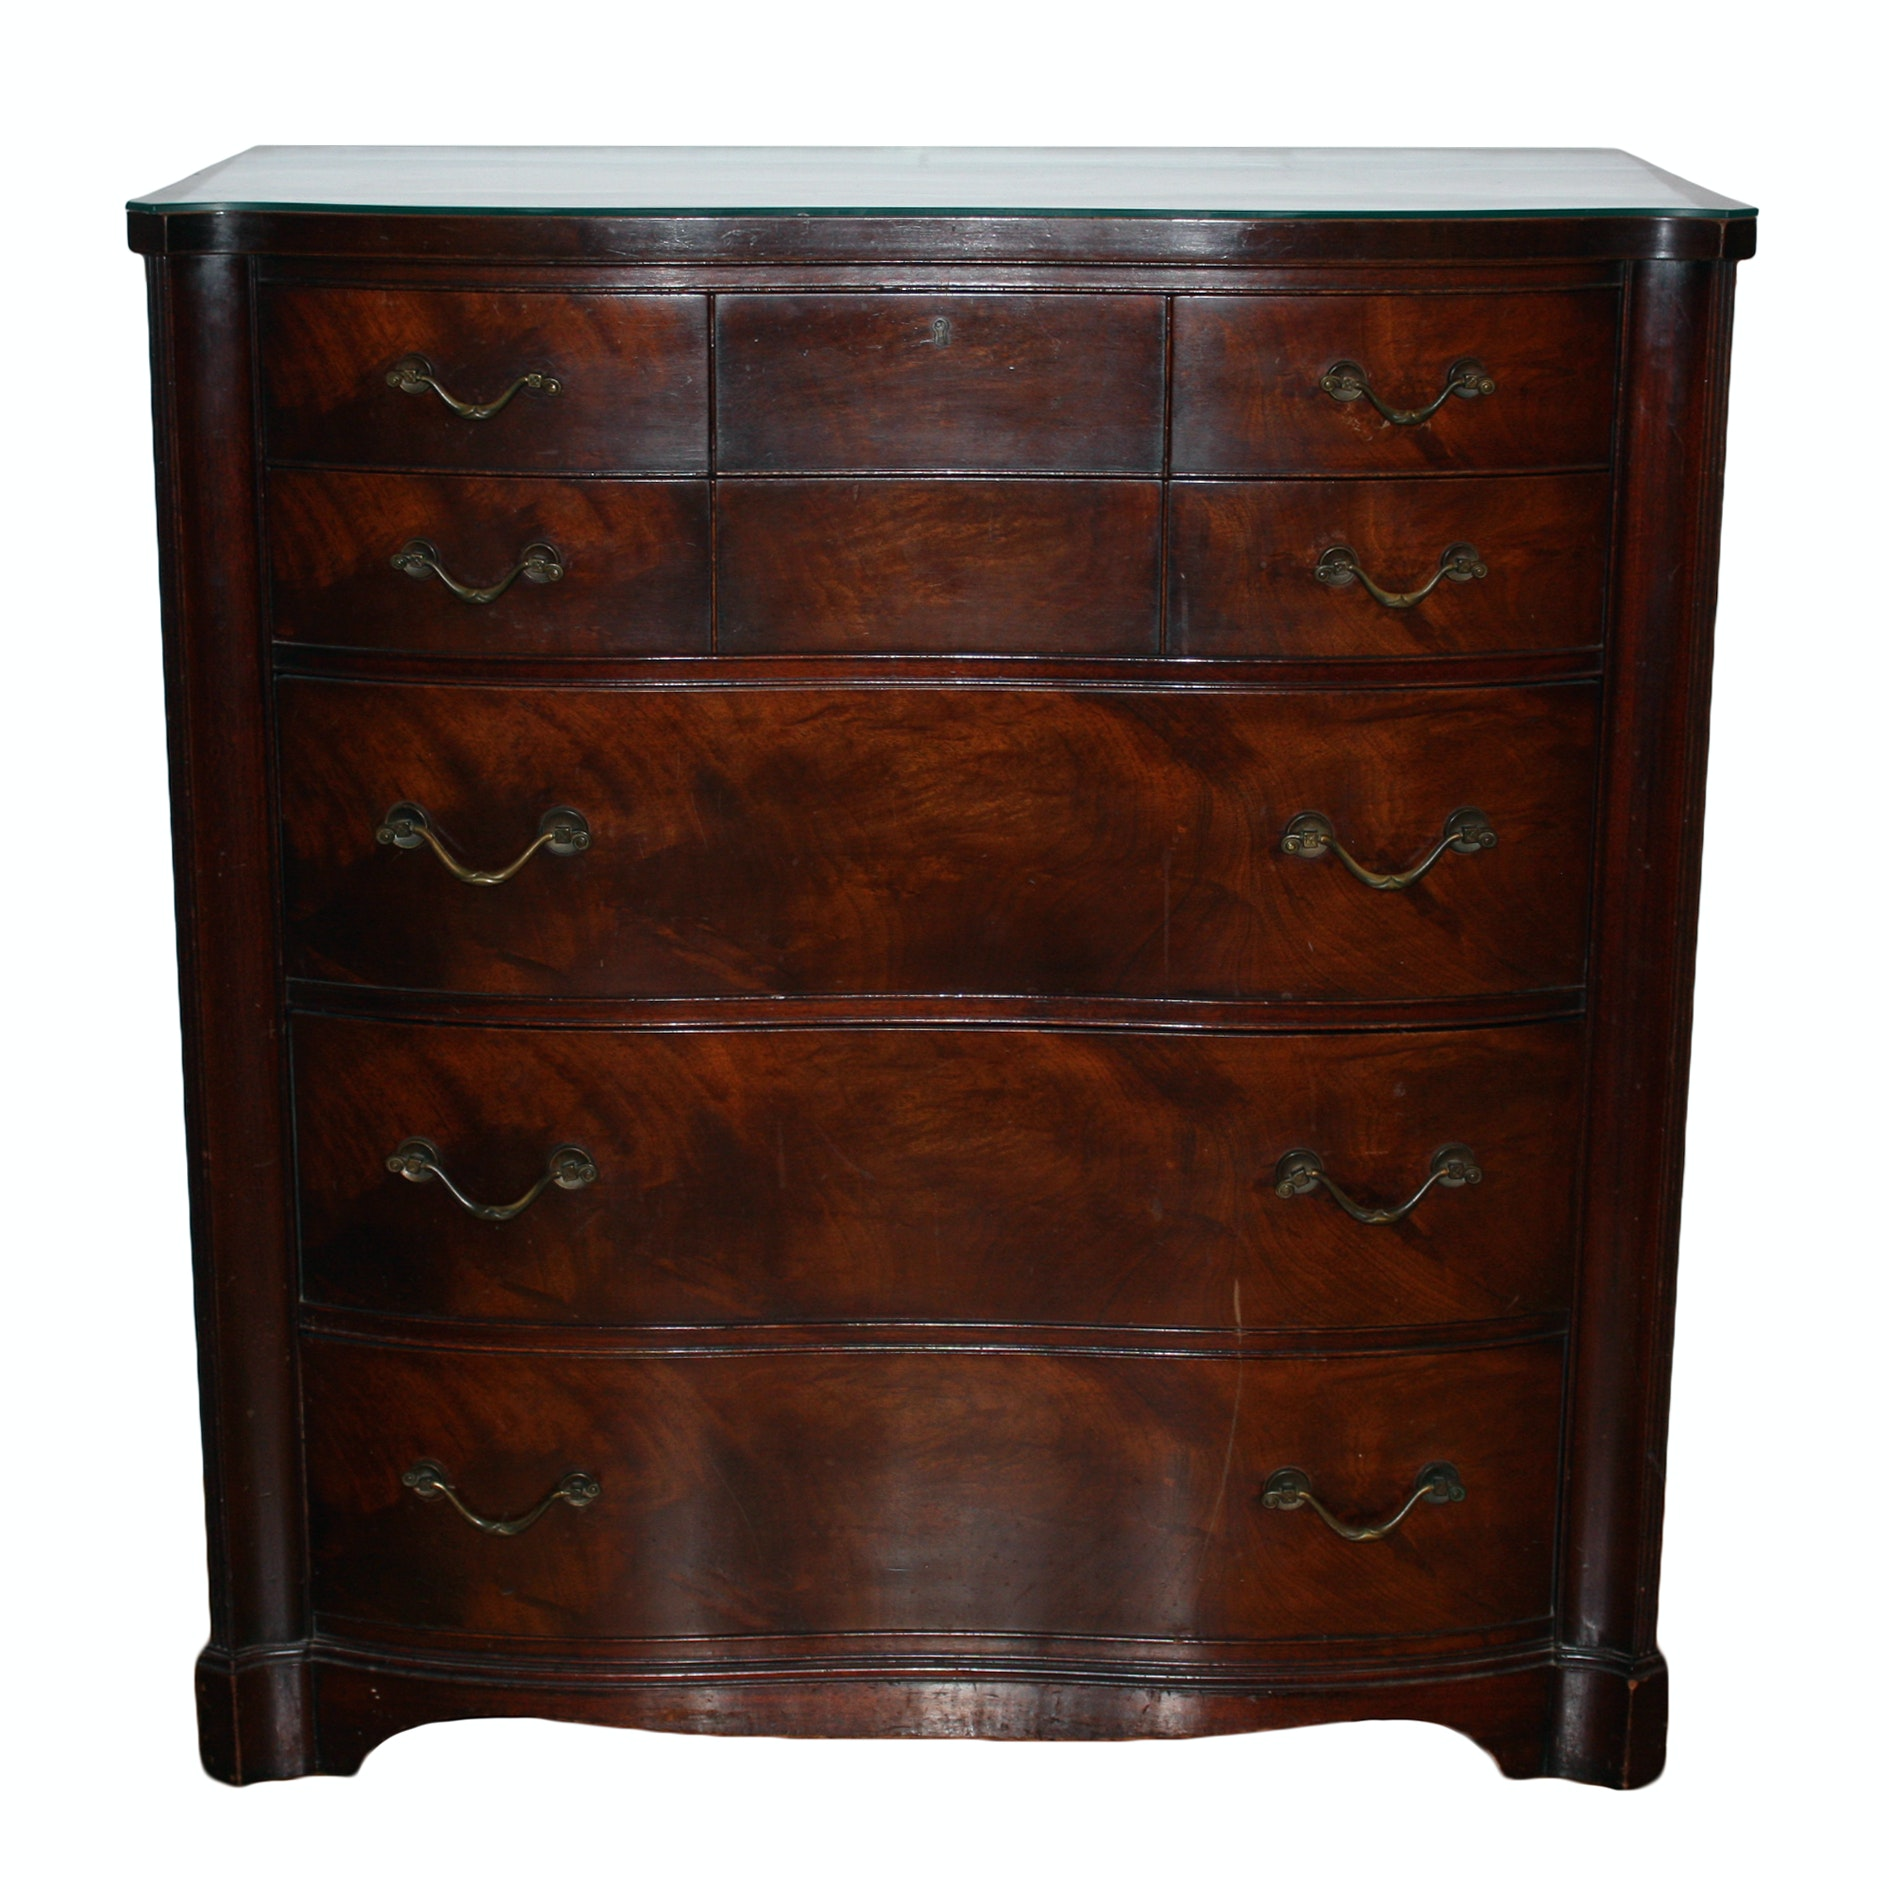 Vintage Federal Style Mahogany Chest of Drawers by Tomlinson